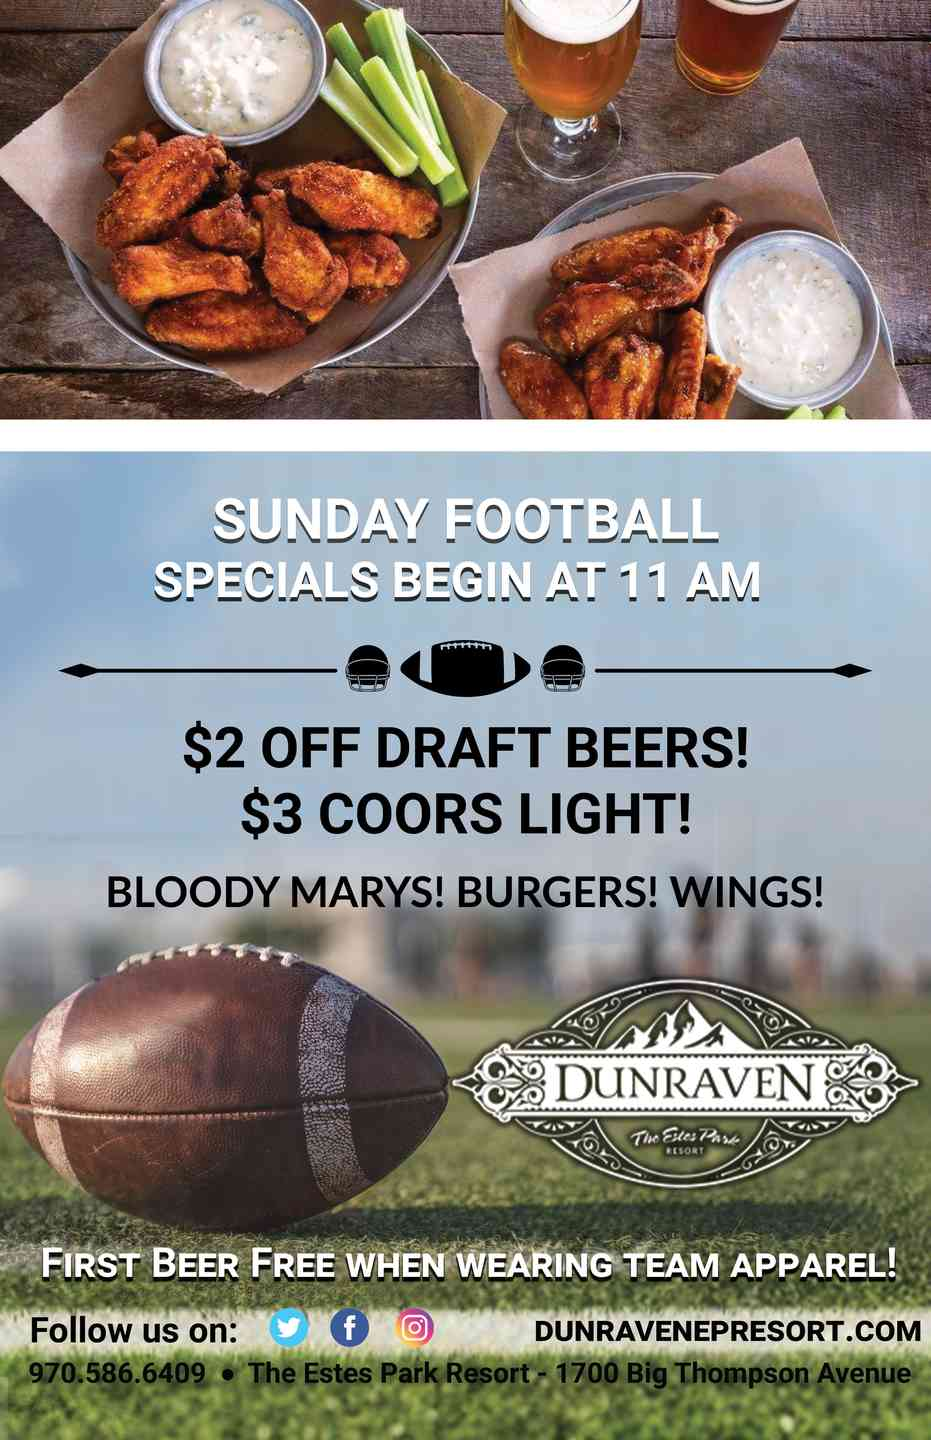 Sunday Game Day ad, free drink with a team jersey